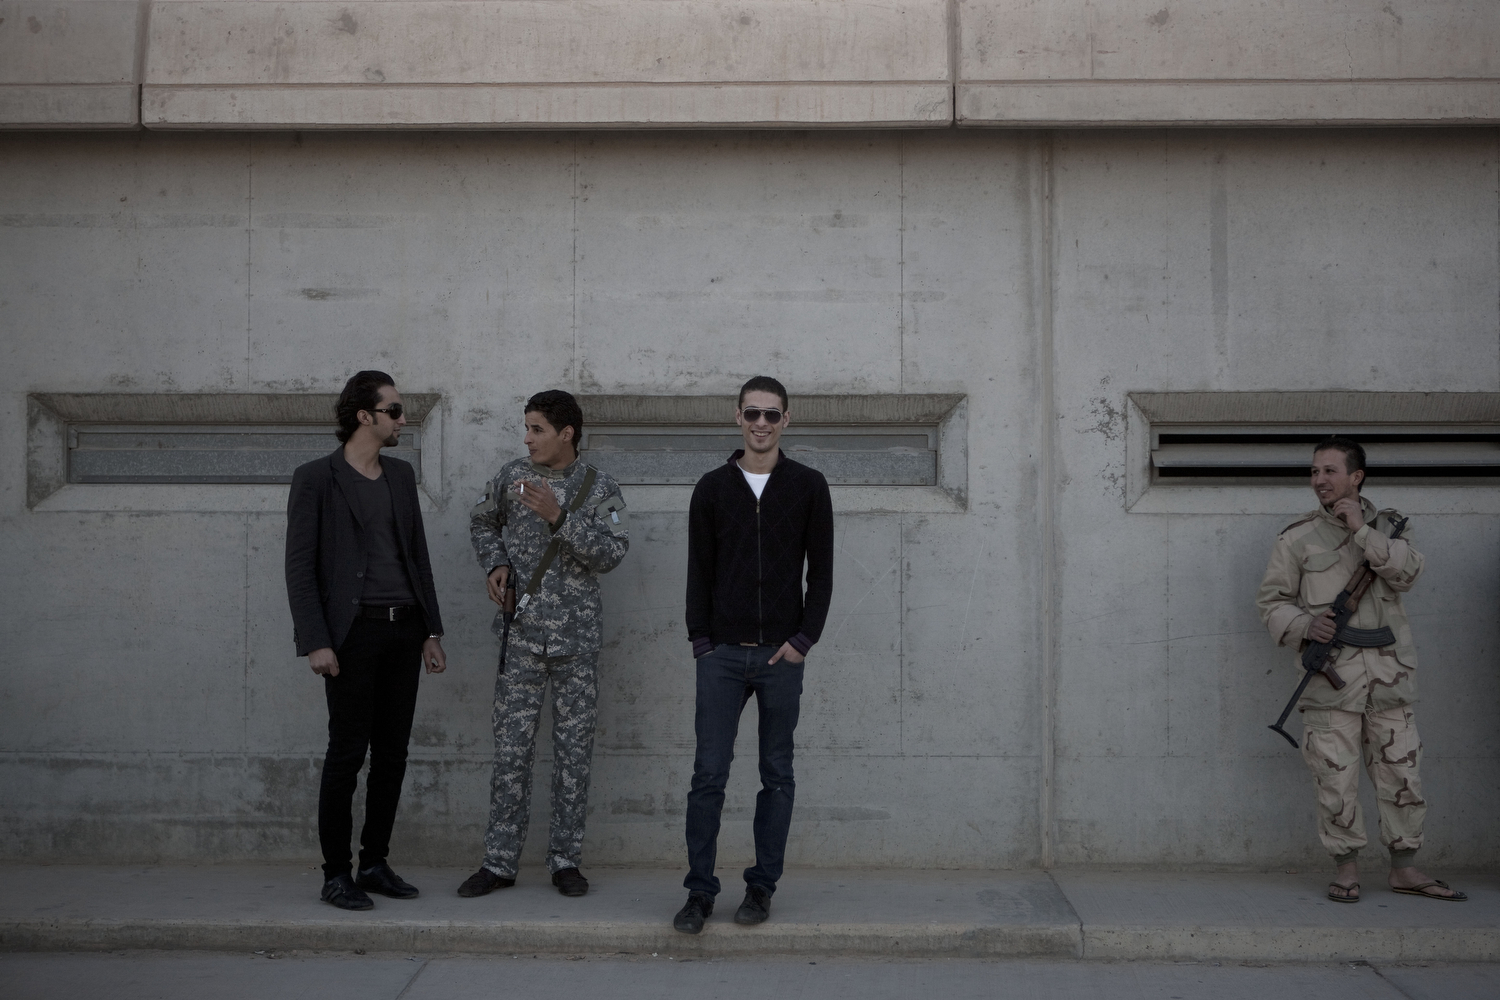 Men and soldiers chat near the blast wall outside of Gaddafi's compound, March 19, 2011.